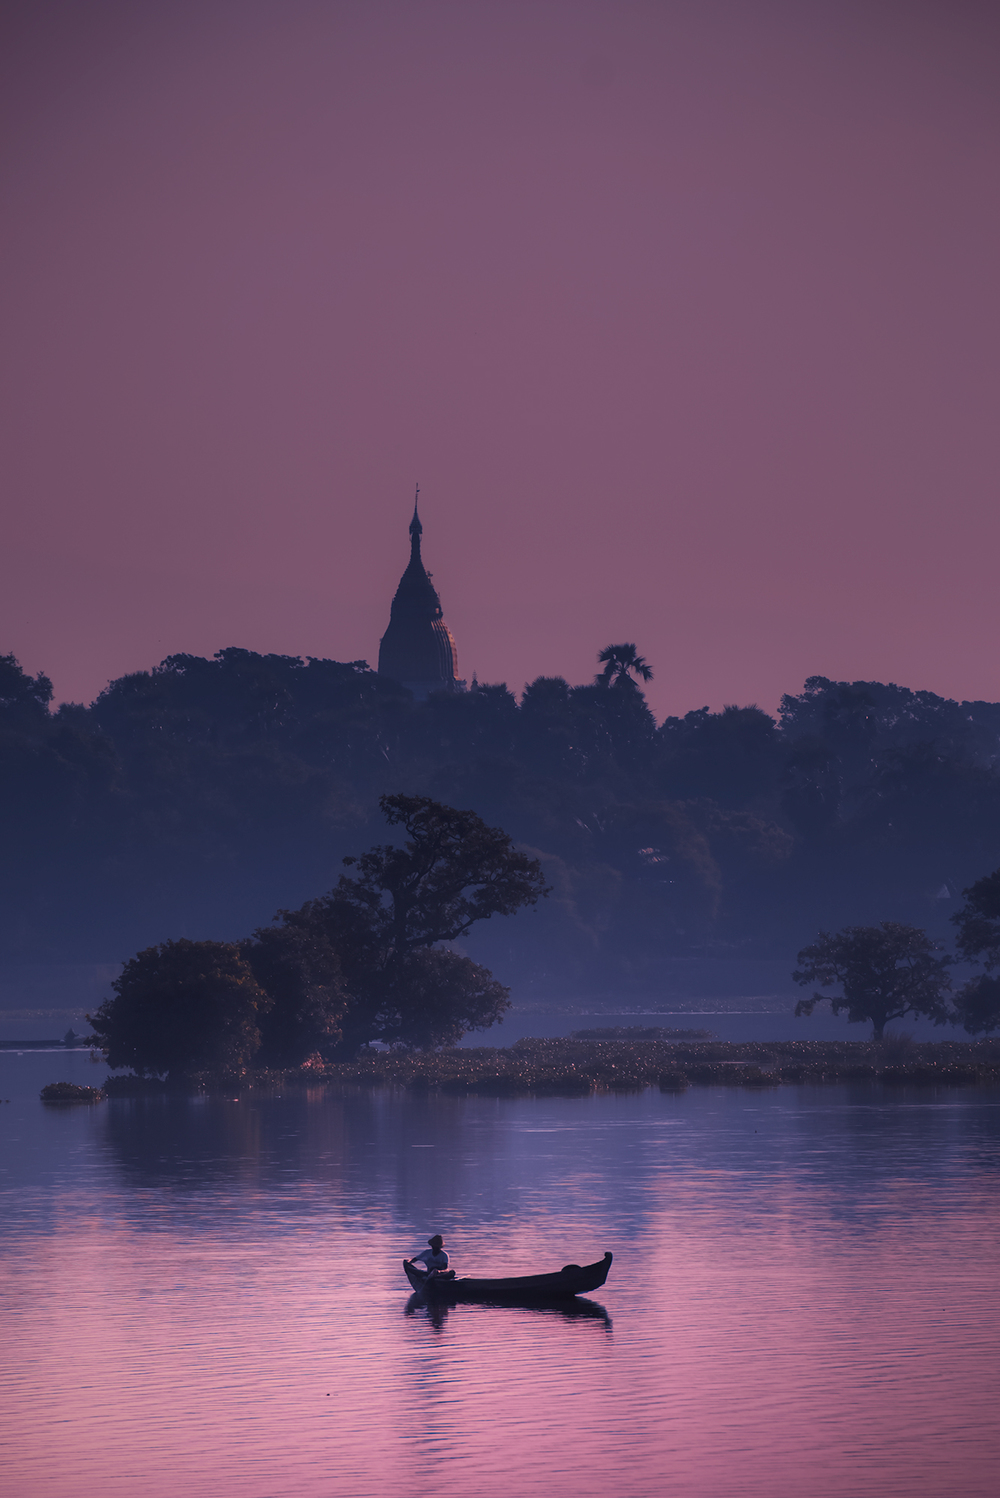 A fisherman  navigates Taungthaman Lake in the shadow of a distant stupa at dawn.